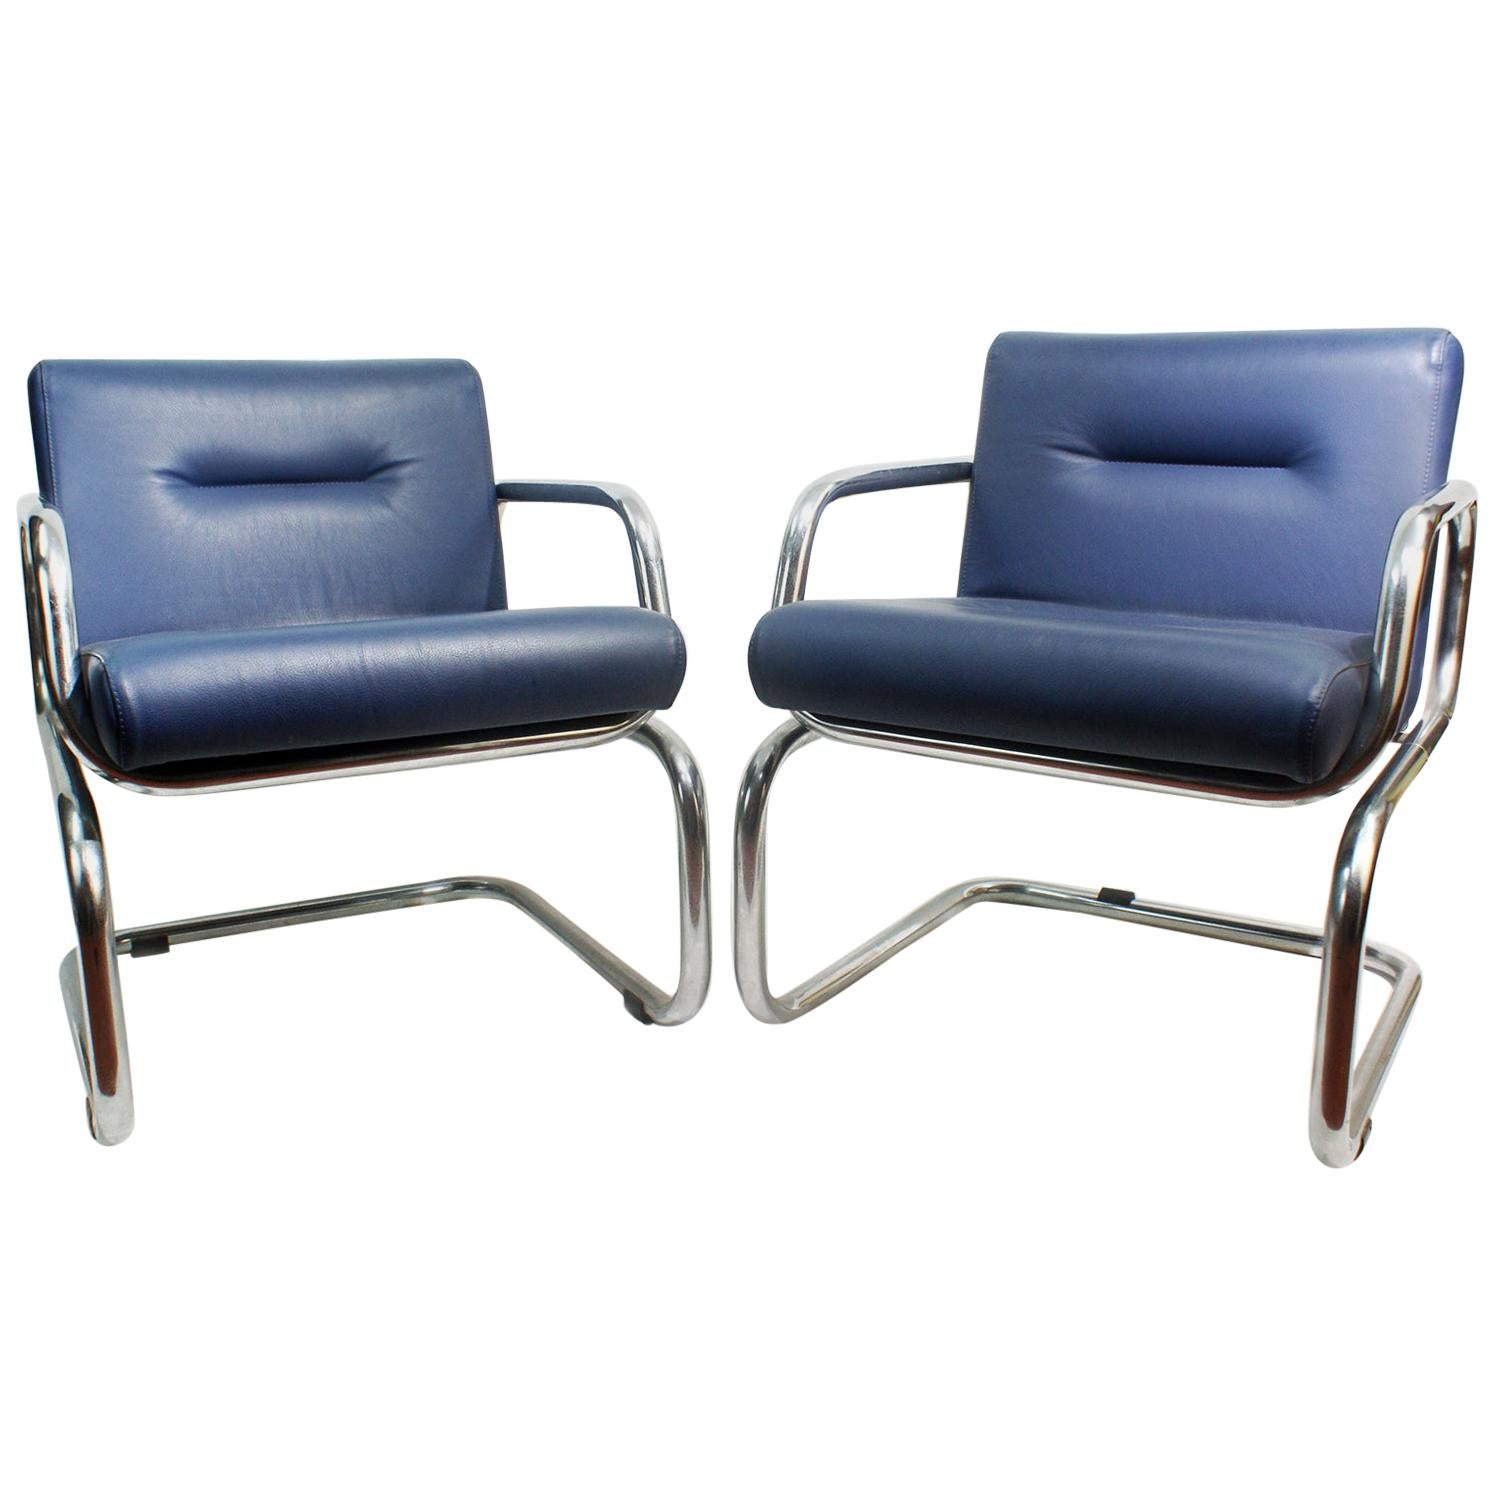 Pair of Cantilever leather Lounge Chairs Manufactured by Thonet in 1980